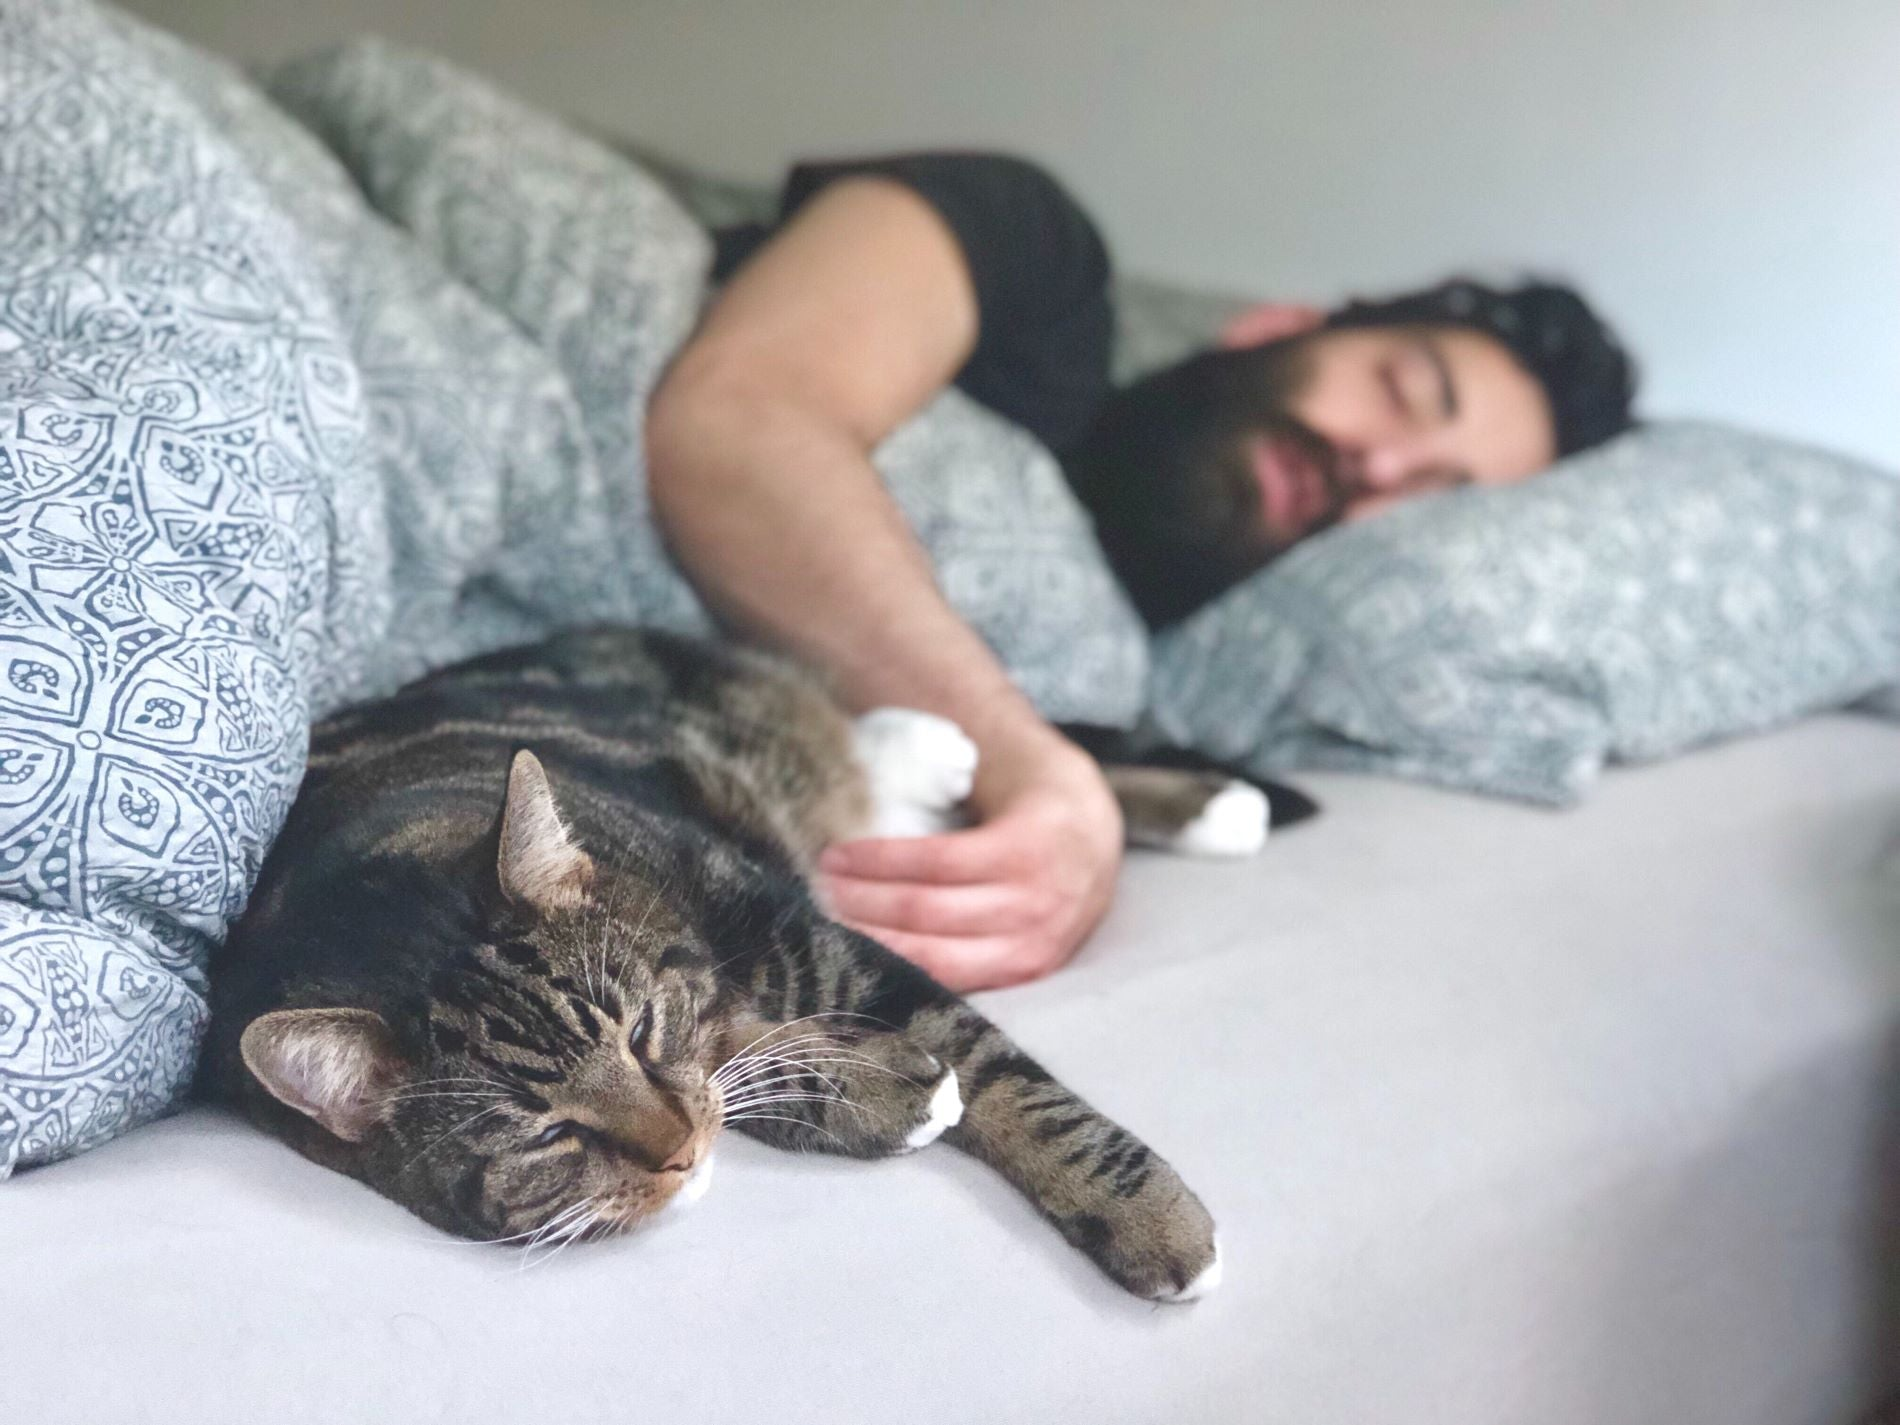 aman and a cat sleeping